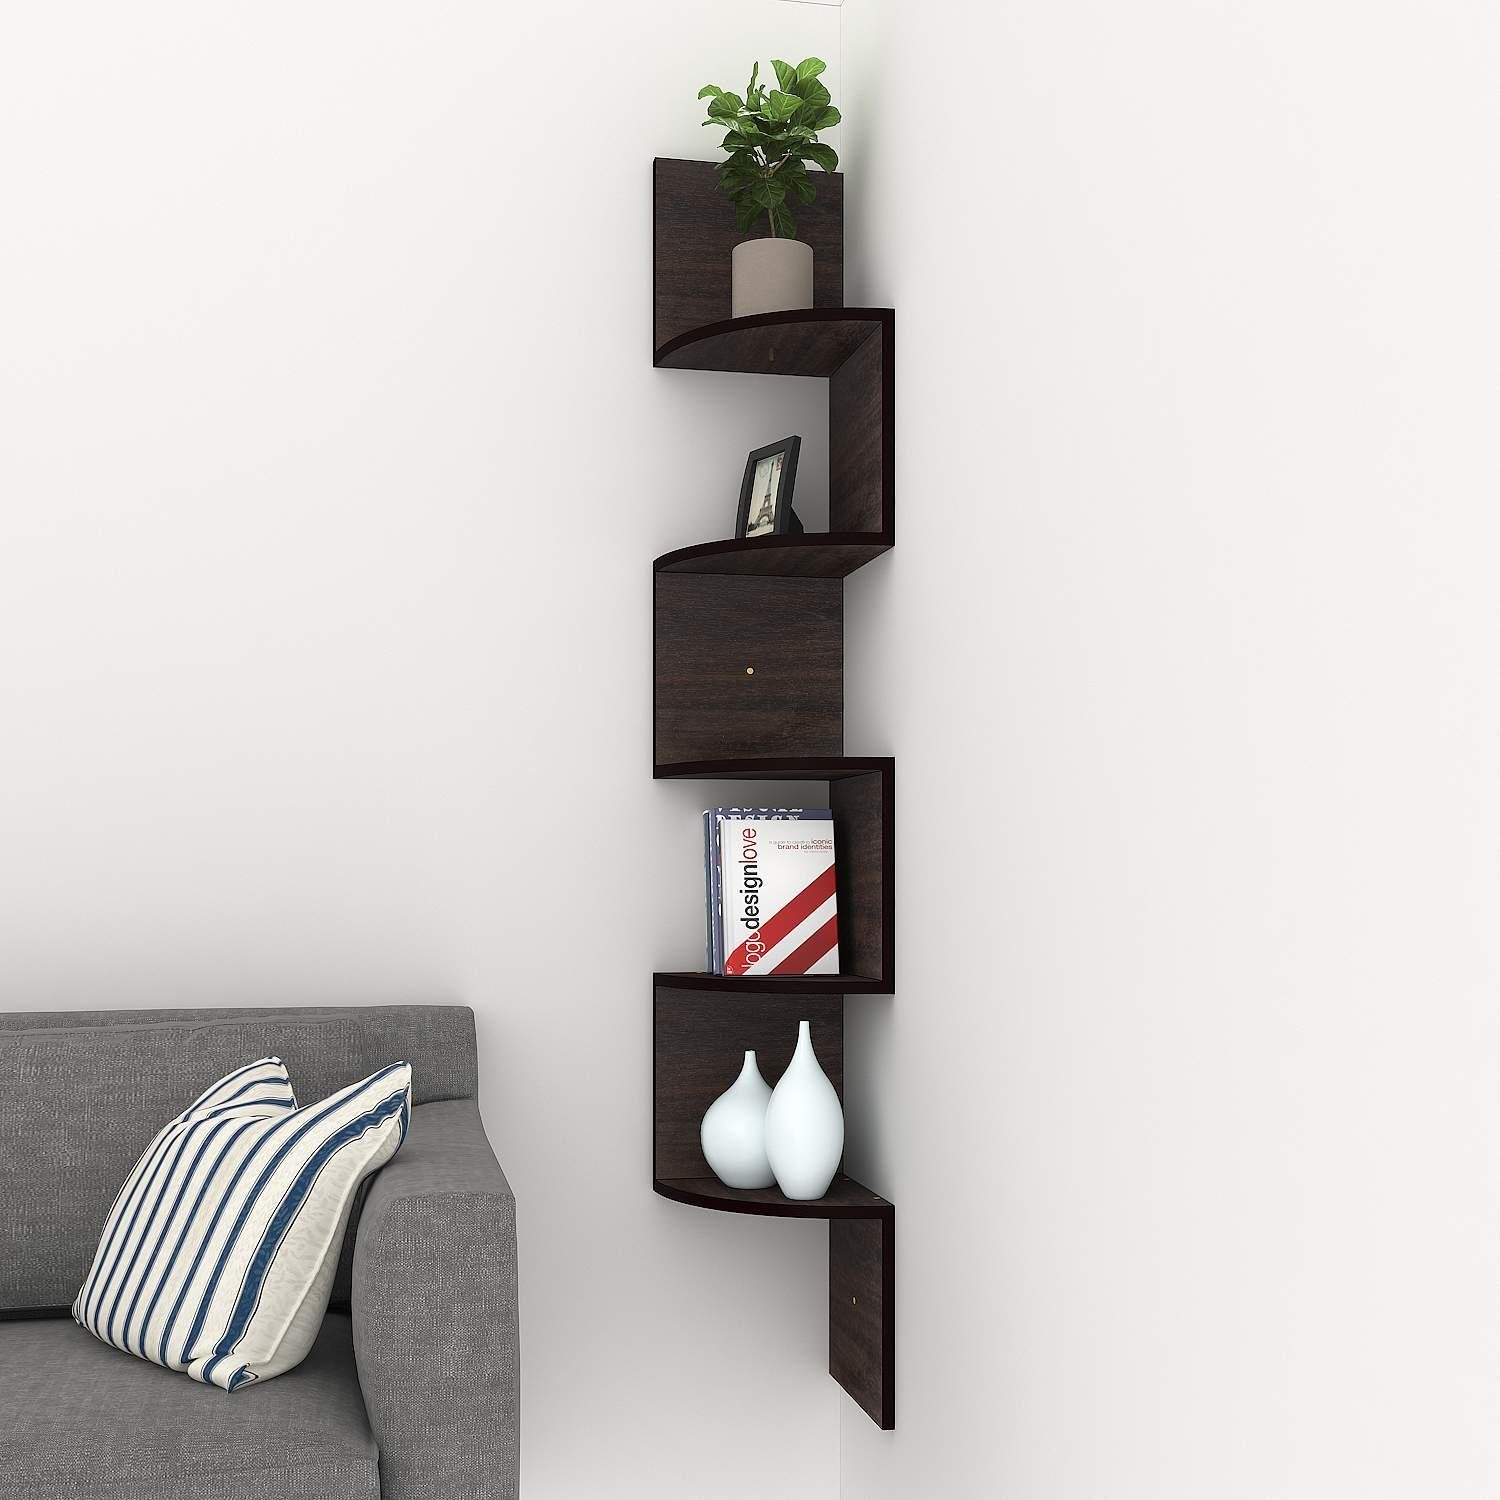 corner floating shelves modern tier mount home decor display shelf uzgtyrgl inch installing stick vinyl tiles bunnings shelving small wood brackets clean white porcelain sink